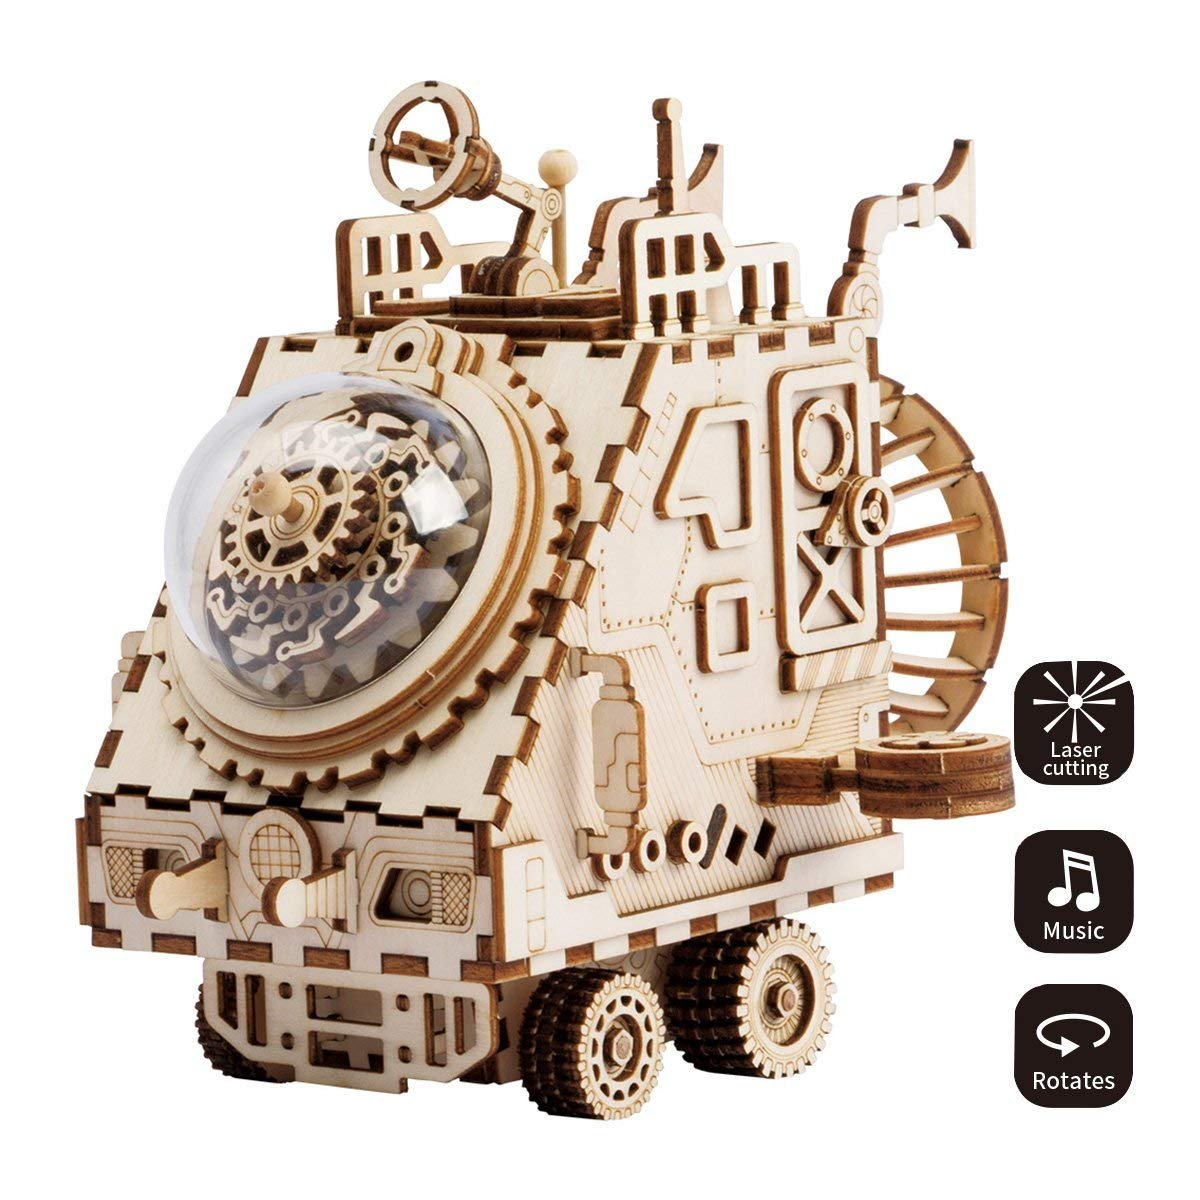 ROKR 3D Assembly Puzzle Build Your Own Wooden Rabbit Music Box Craft Kits Kids Adults